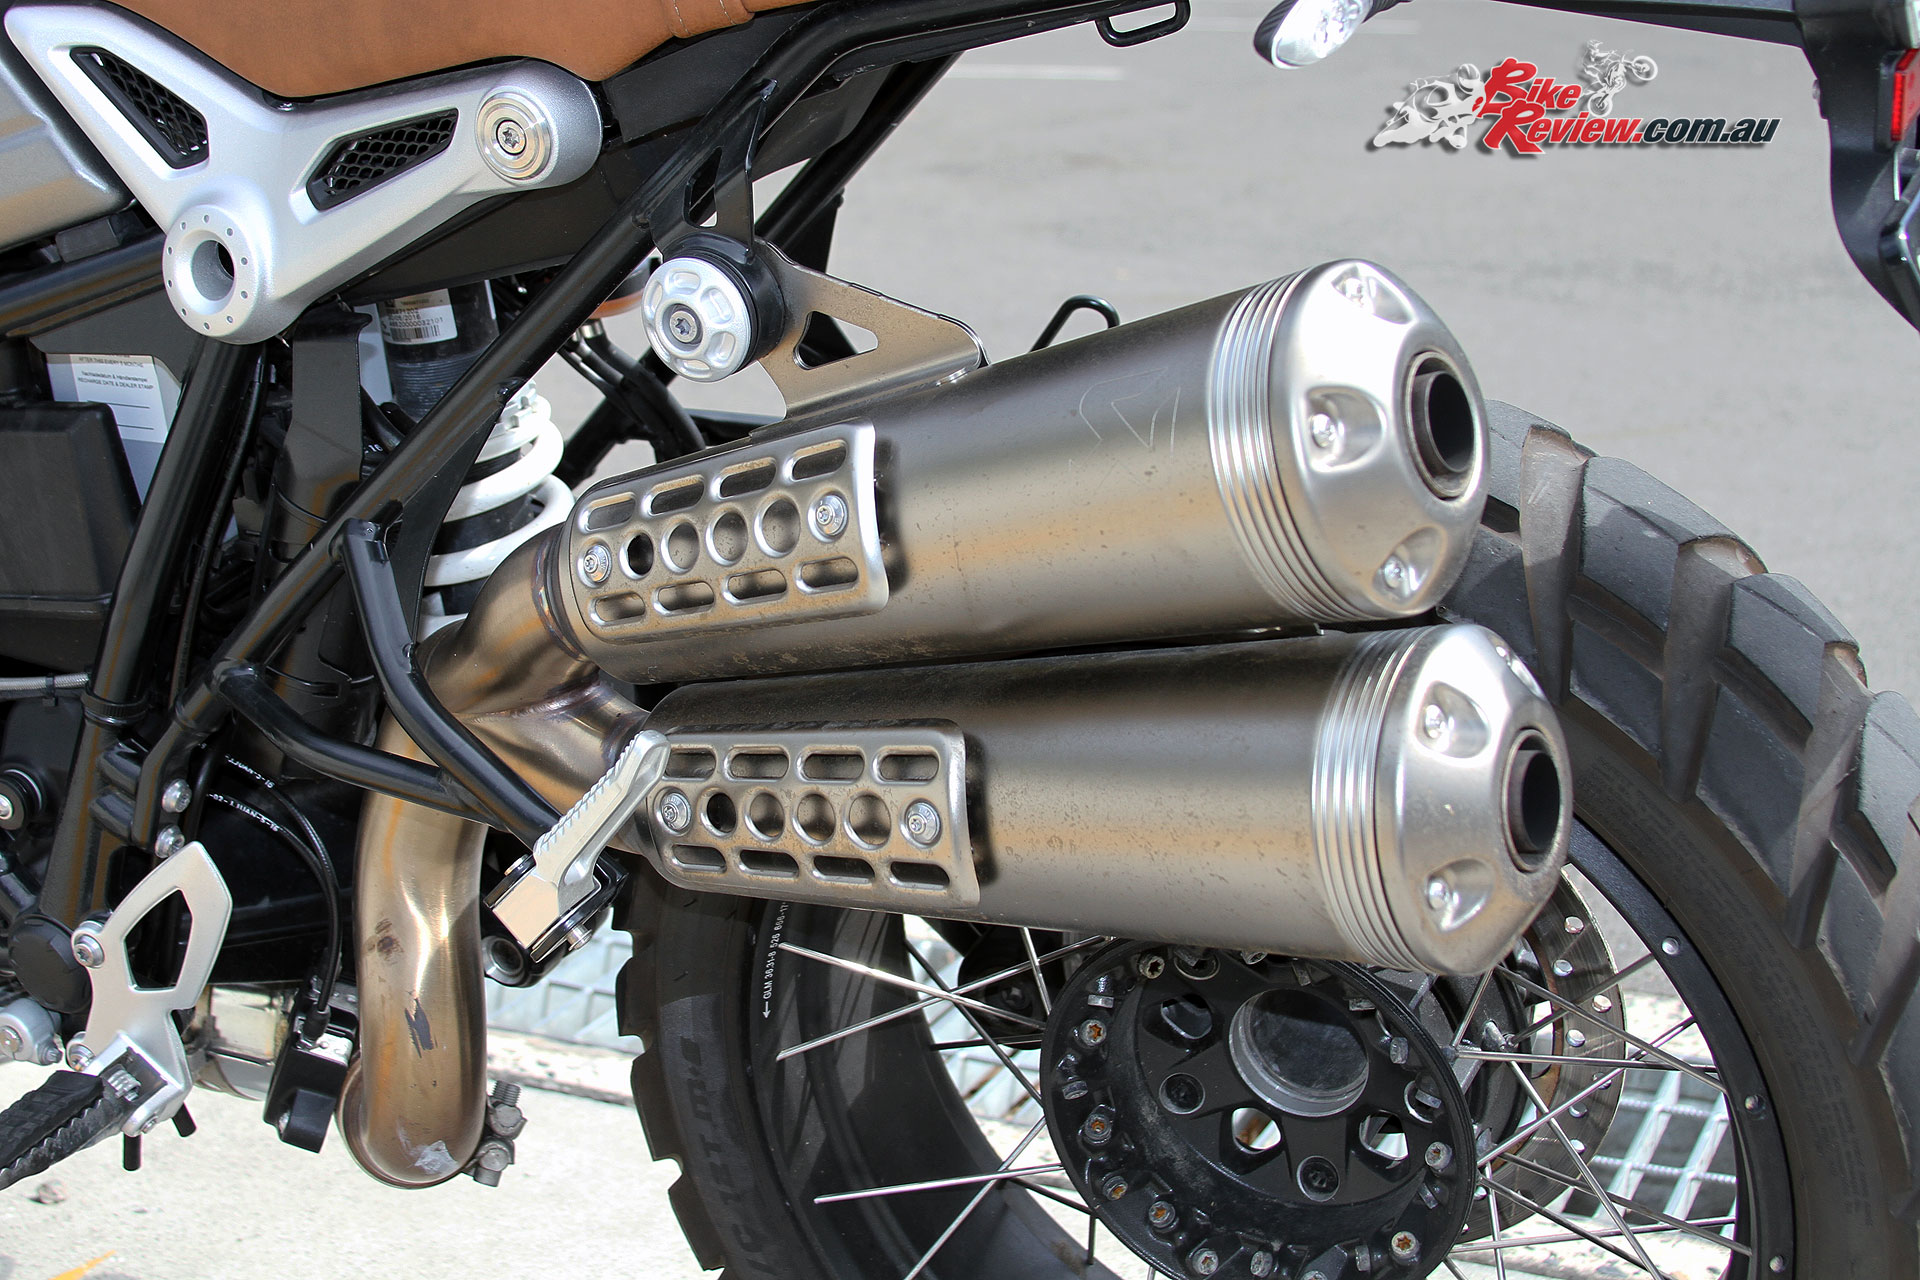 Bmw R Nine T Scrambler Exhaust | Reviewmotors co